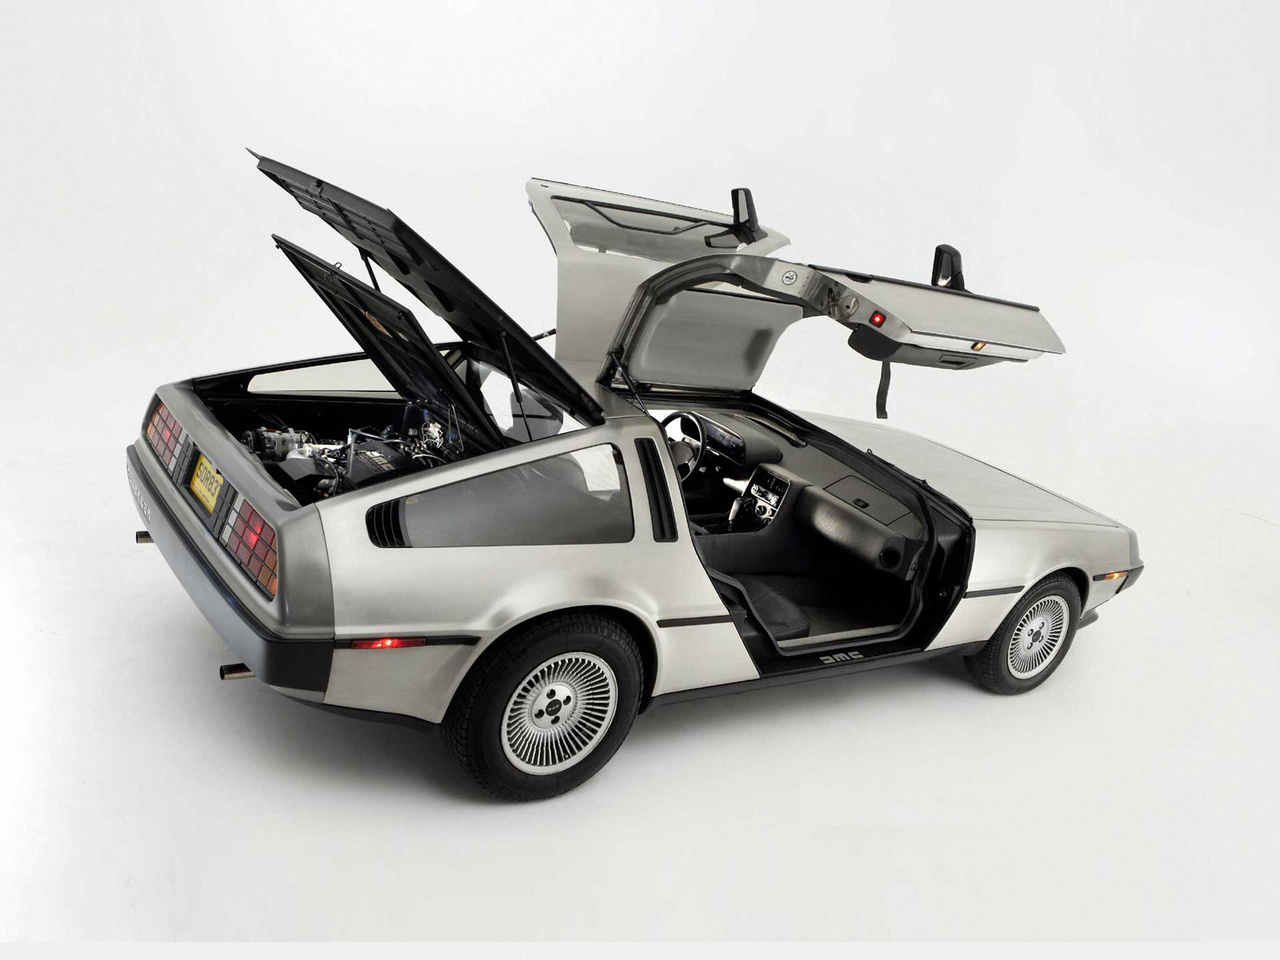 Delorean_dmc-12_1